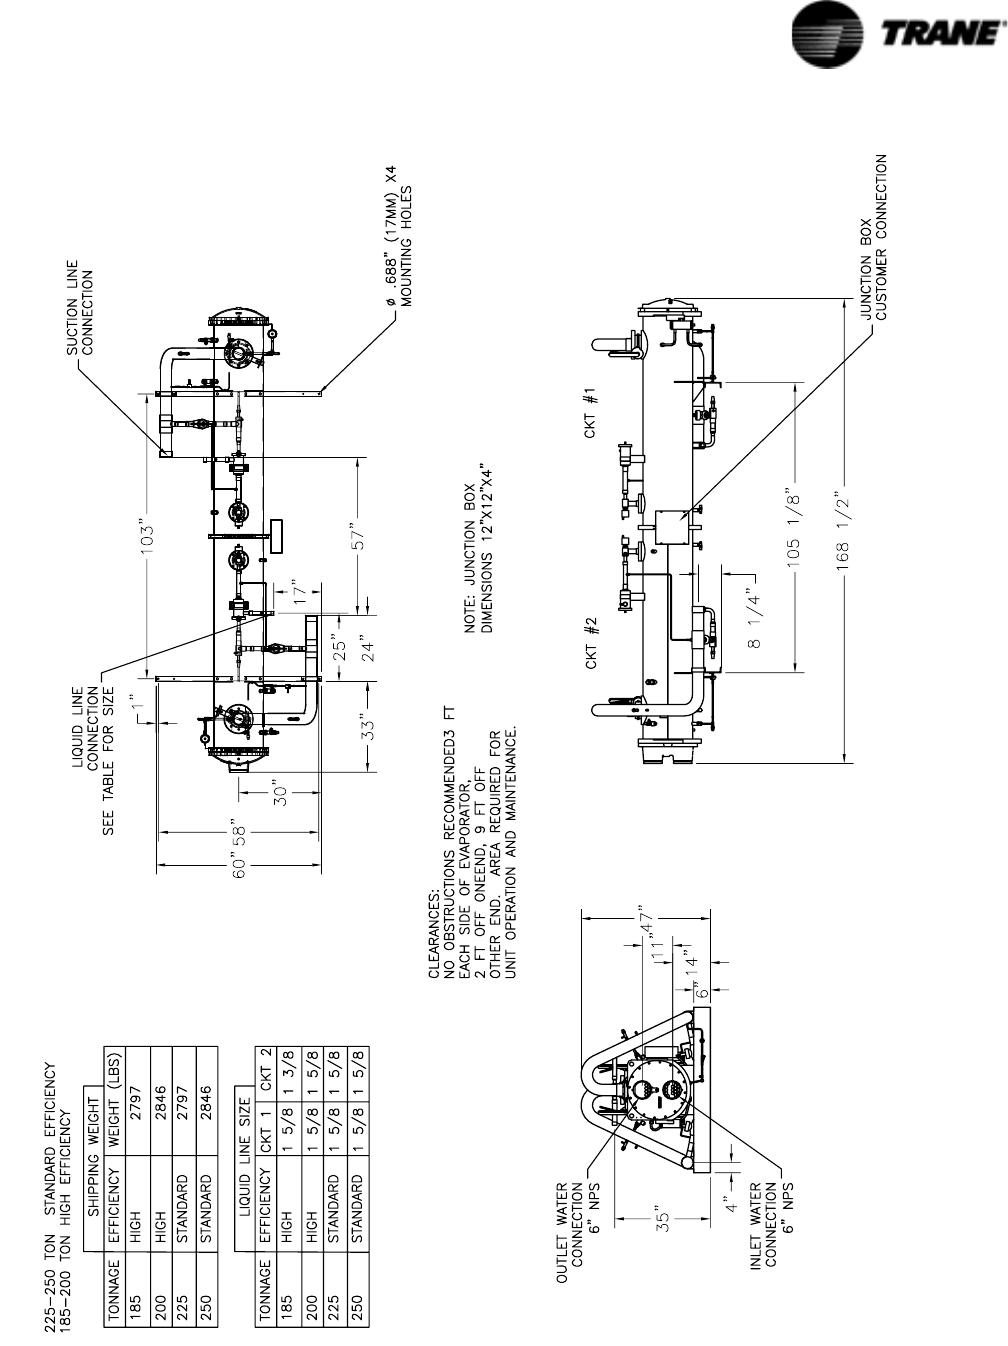 Trane Rtac 140 400 Users Manual Svx01f En 01 2006 Iom Series R Tac 48 Refrigeration Wiring Diagram 25